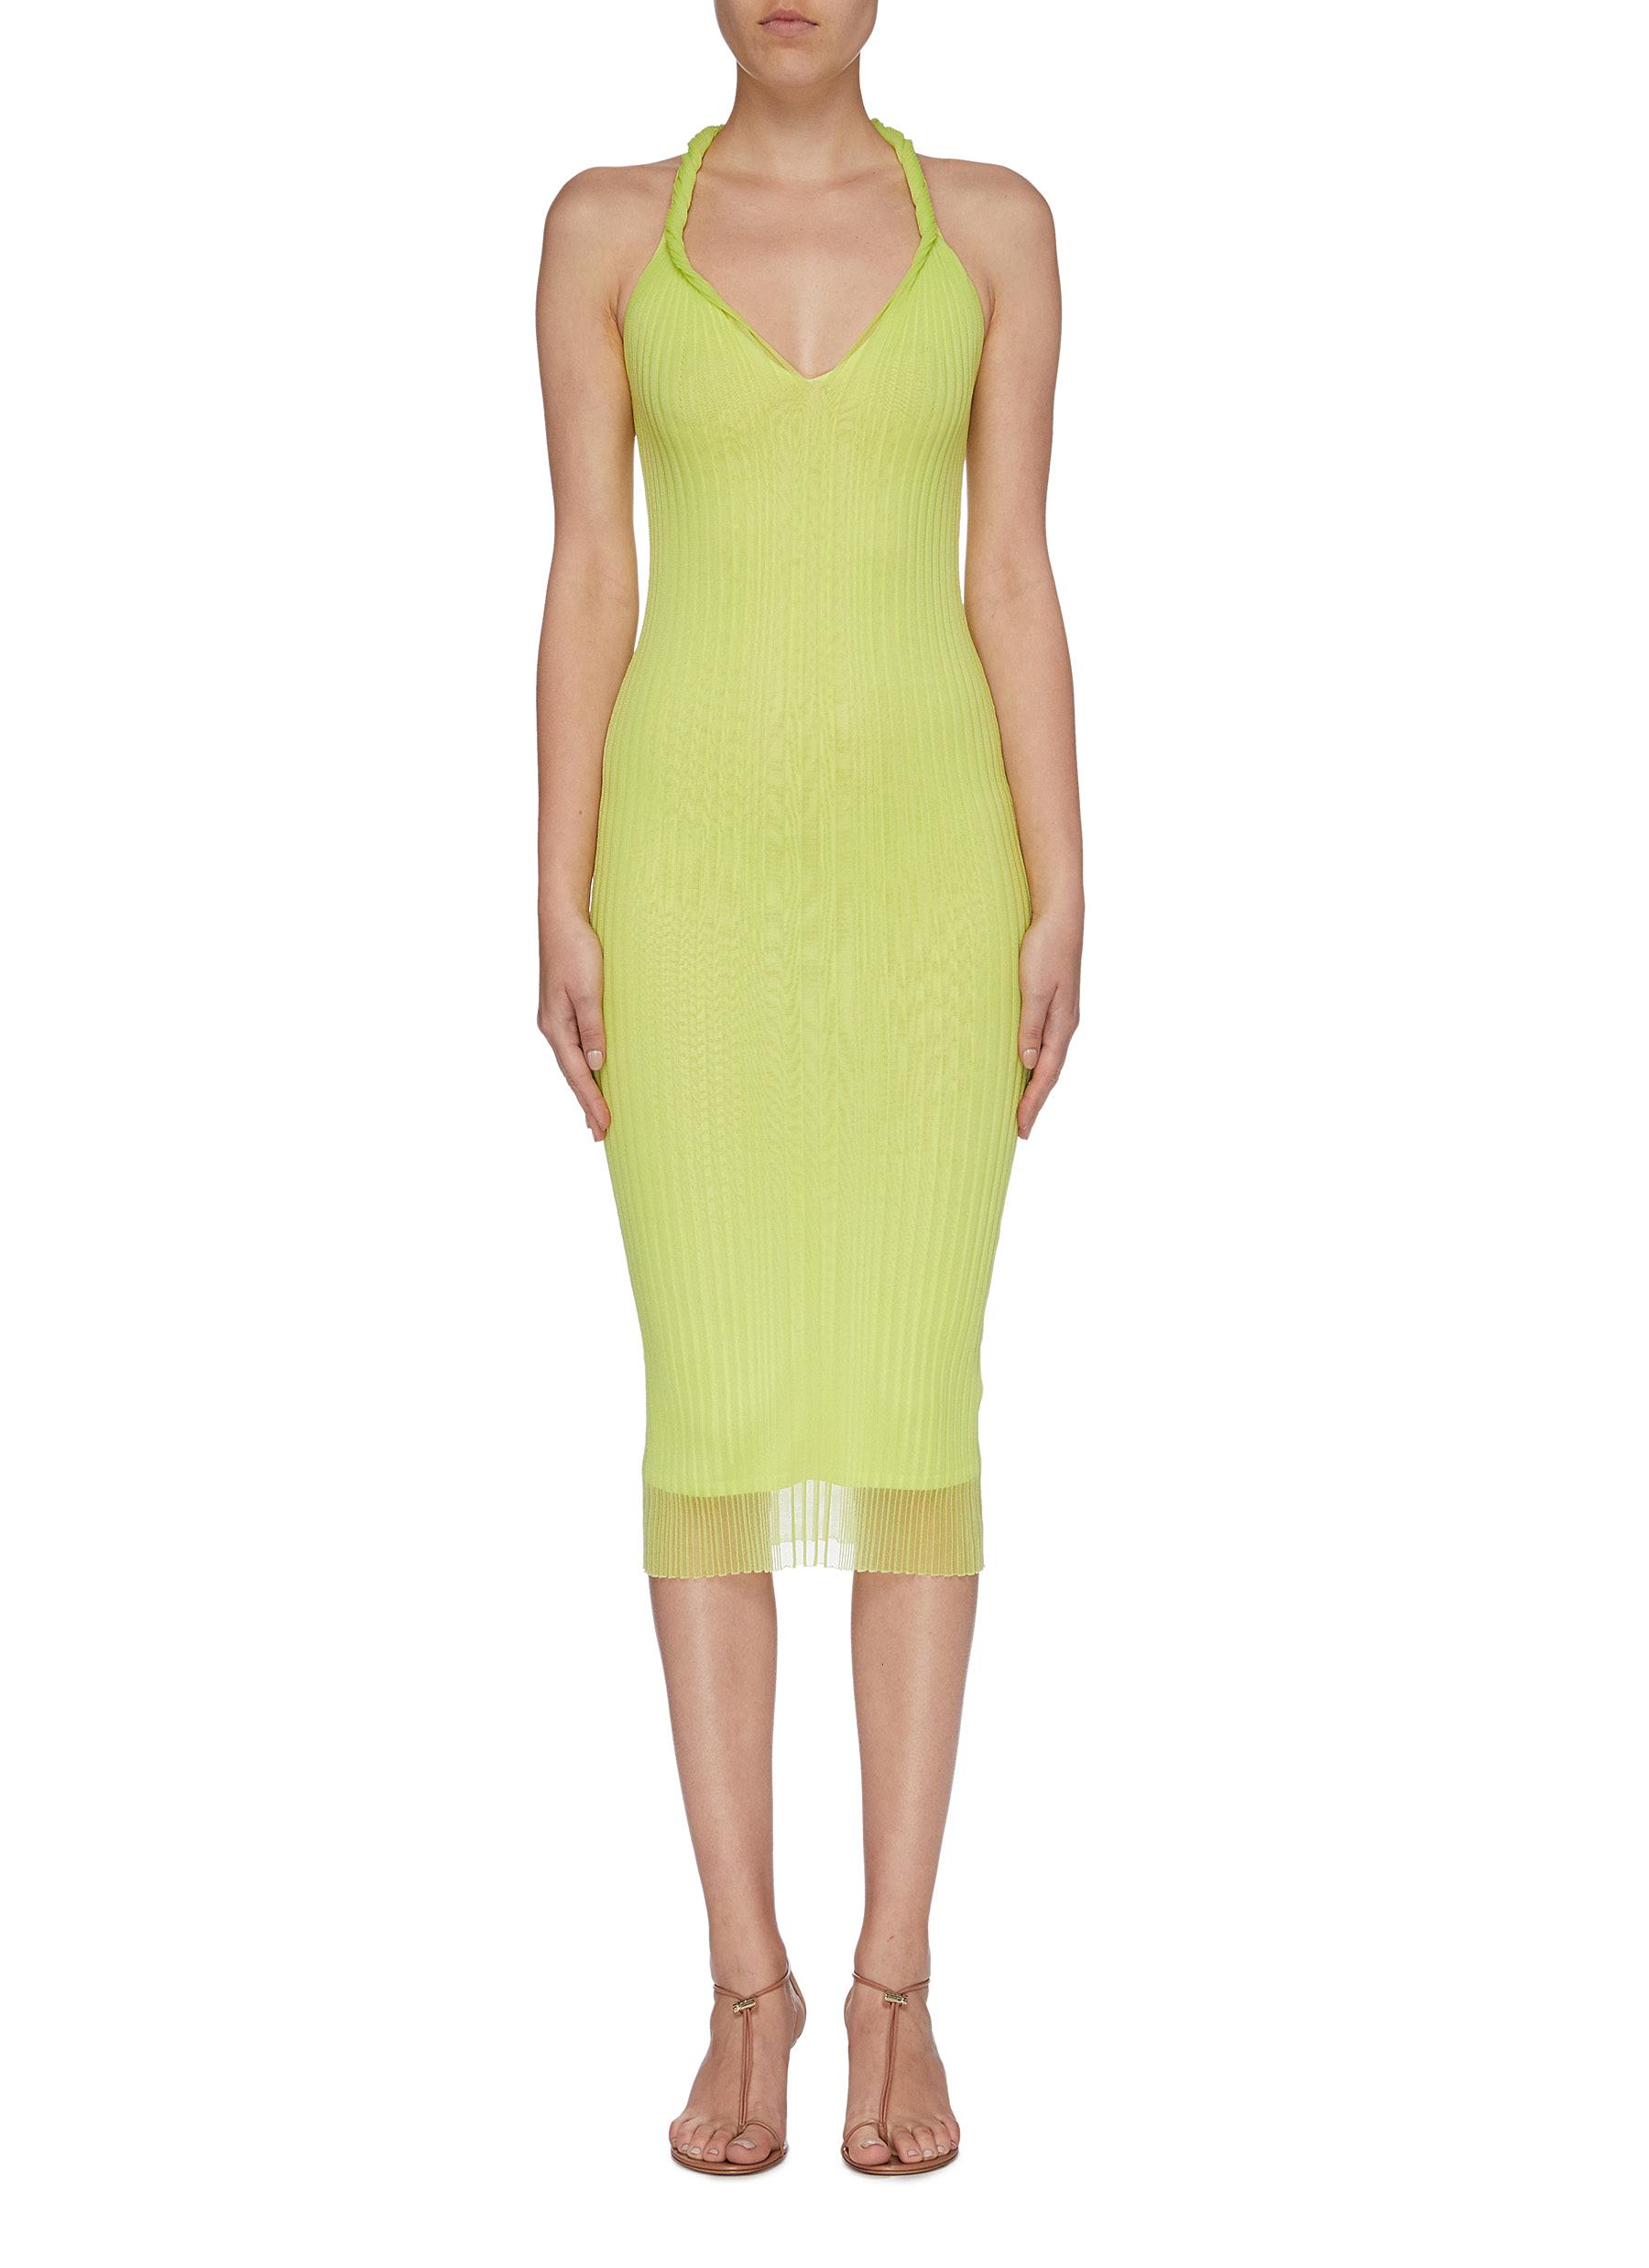 Twist strap sleeveless rib knit racerback dress by Dion Lee